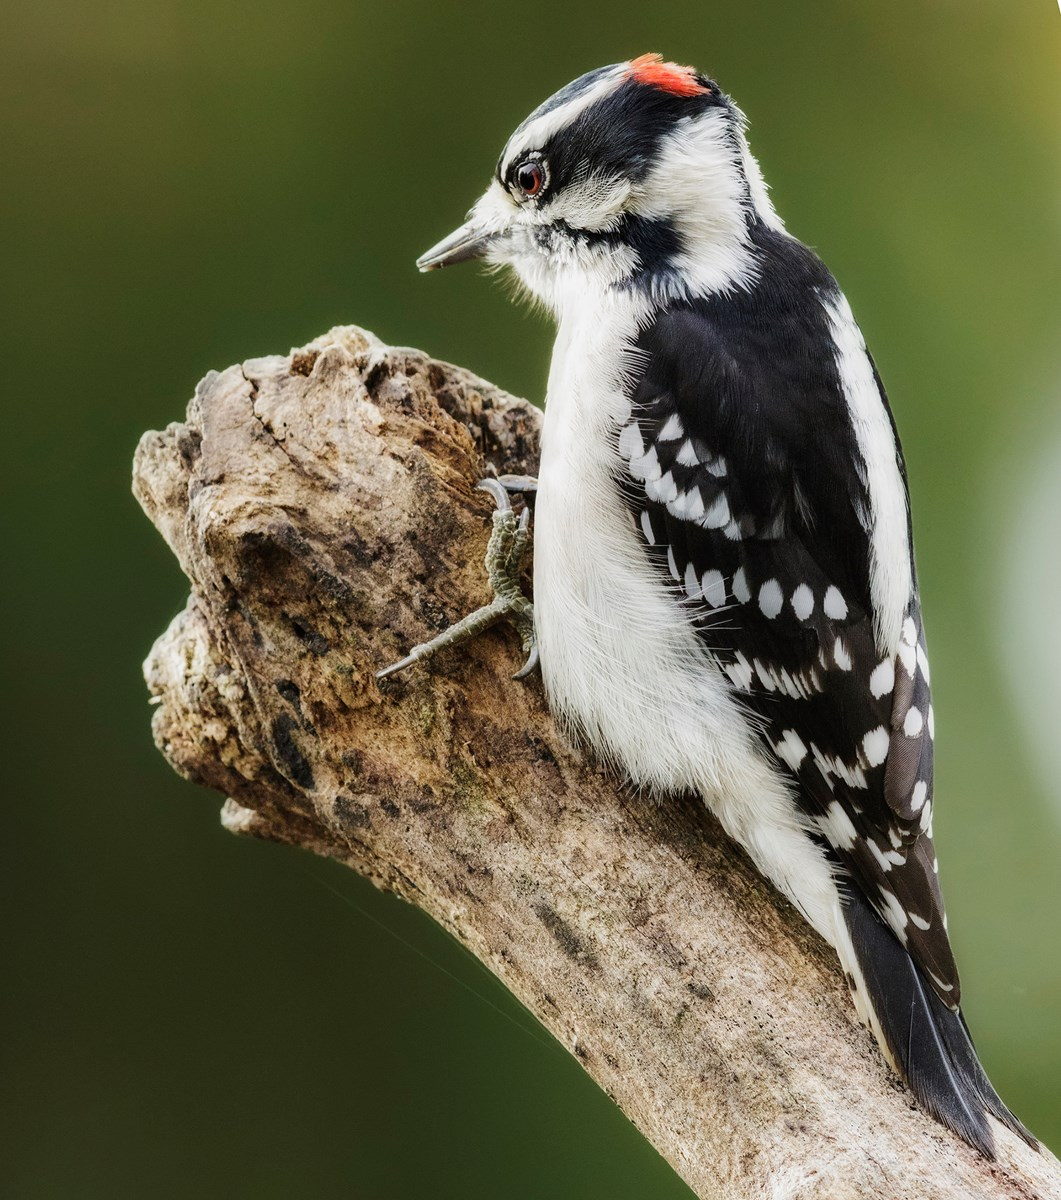 A woodpecker perched on a branch getting ready to peck.